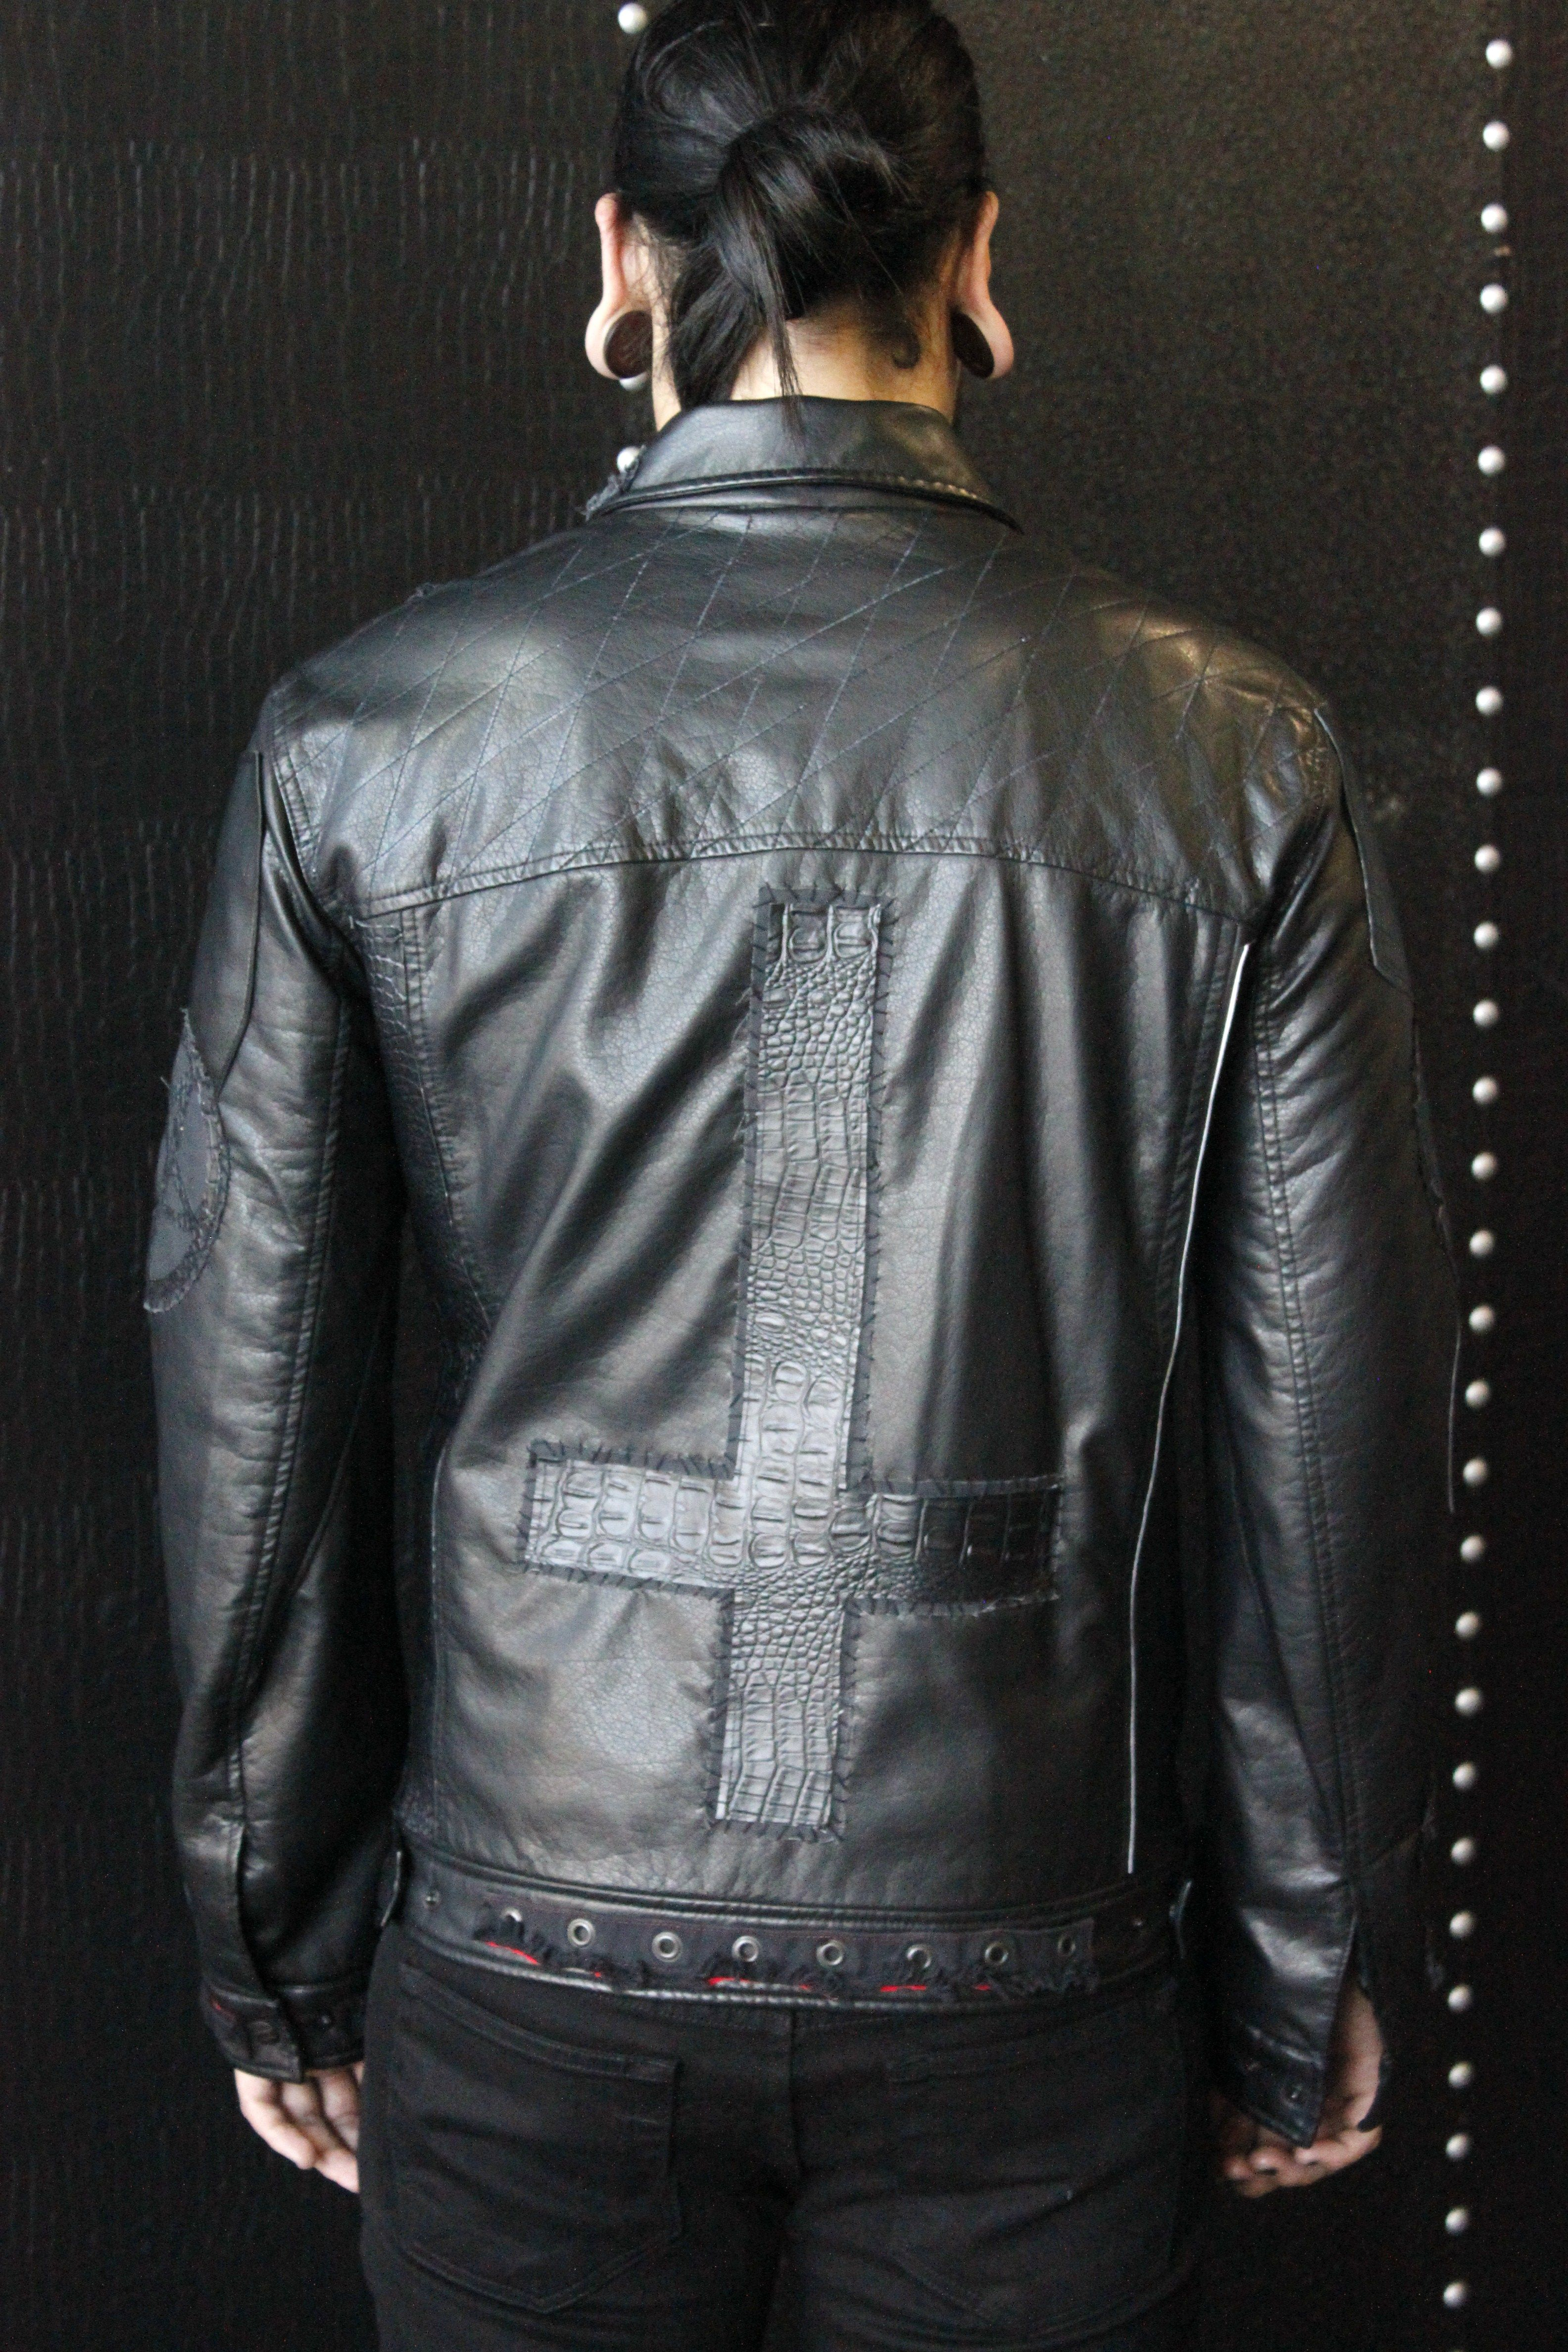 eaa559b13 Forgotten Saints LA Faux Leather Stage Jacket with Inverted Cross ...